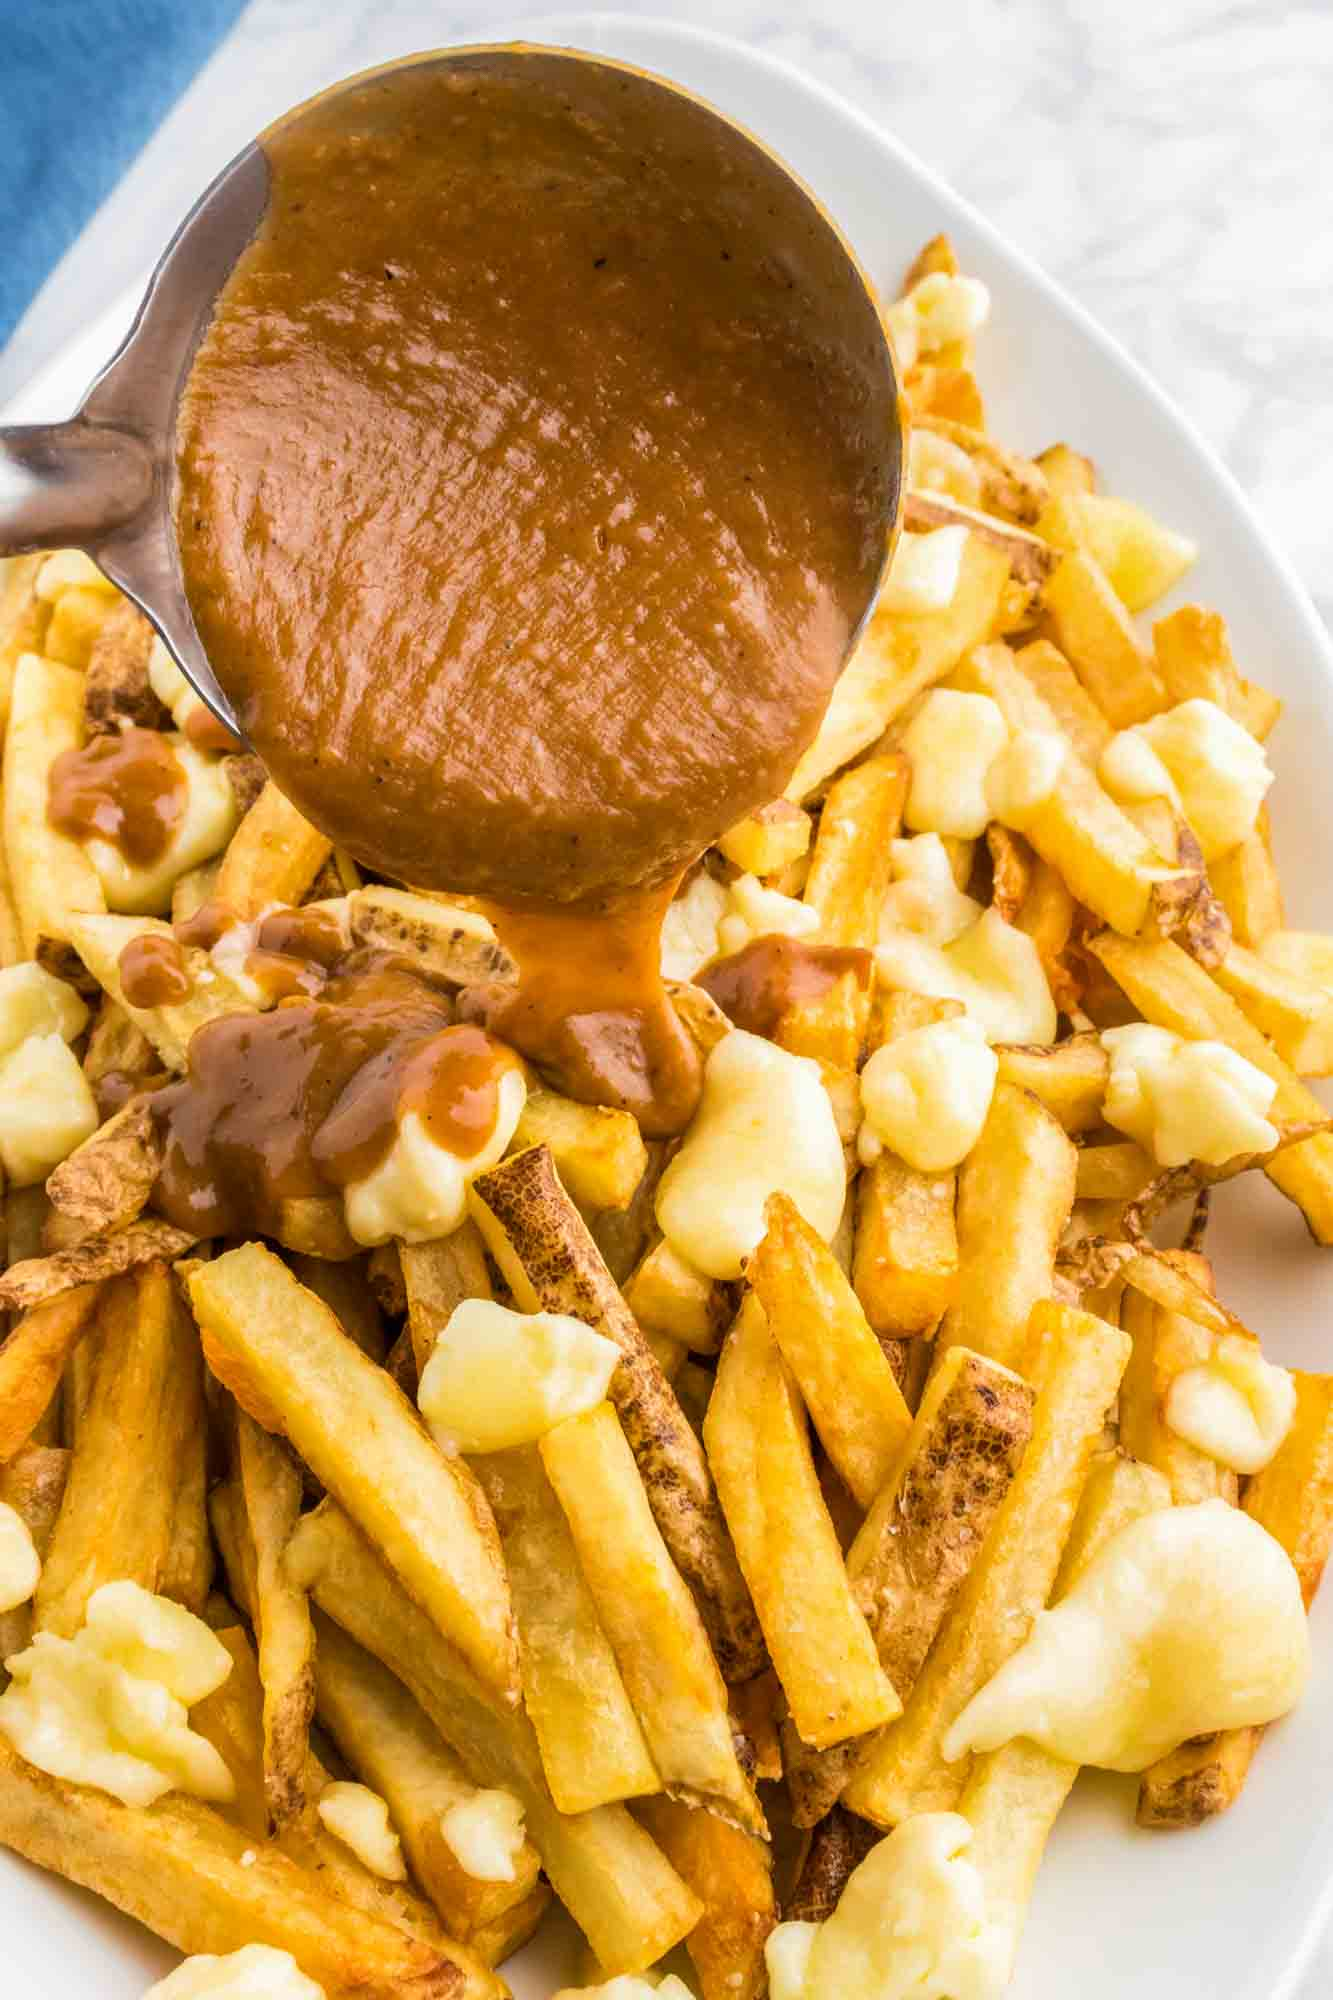 Pouting brown gravy over poutine fries and cheese curds